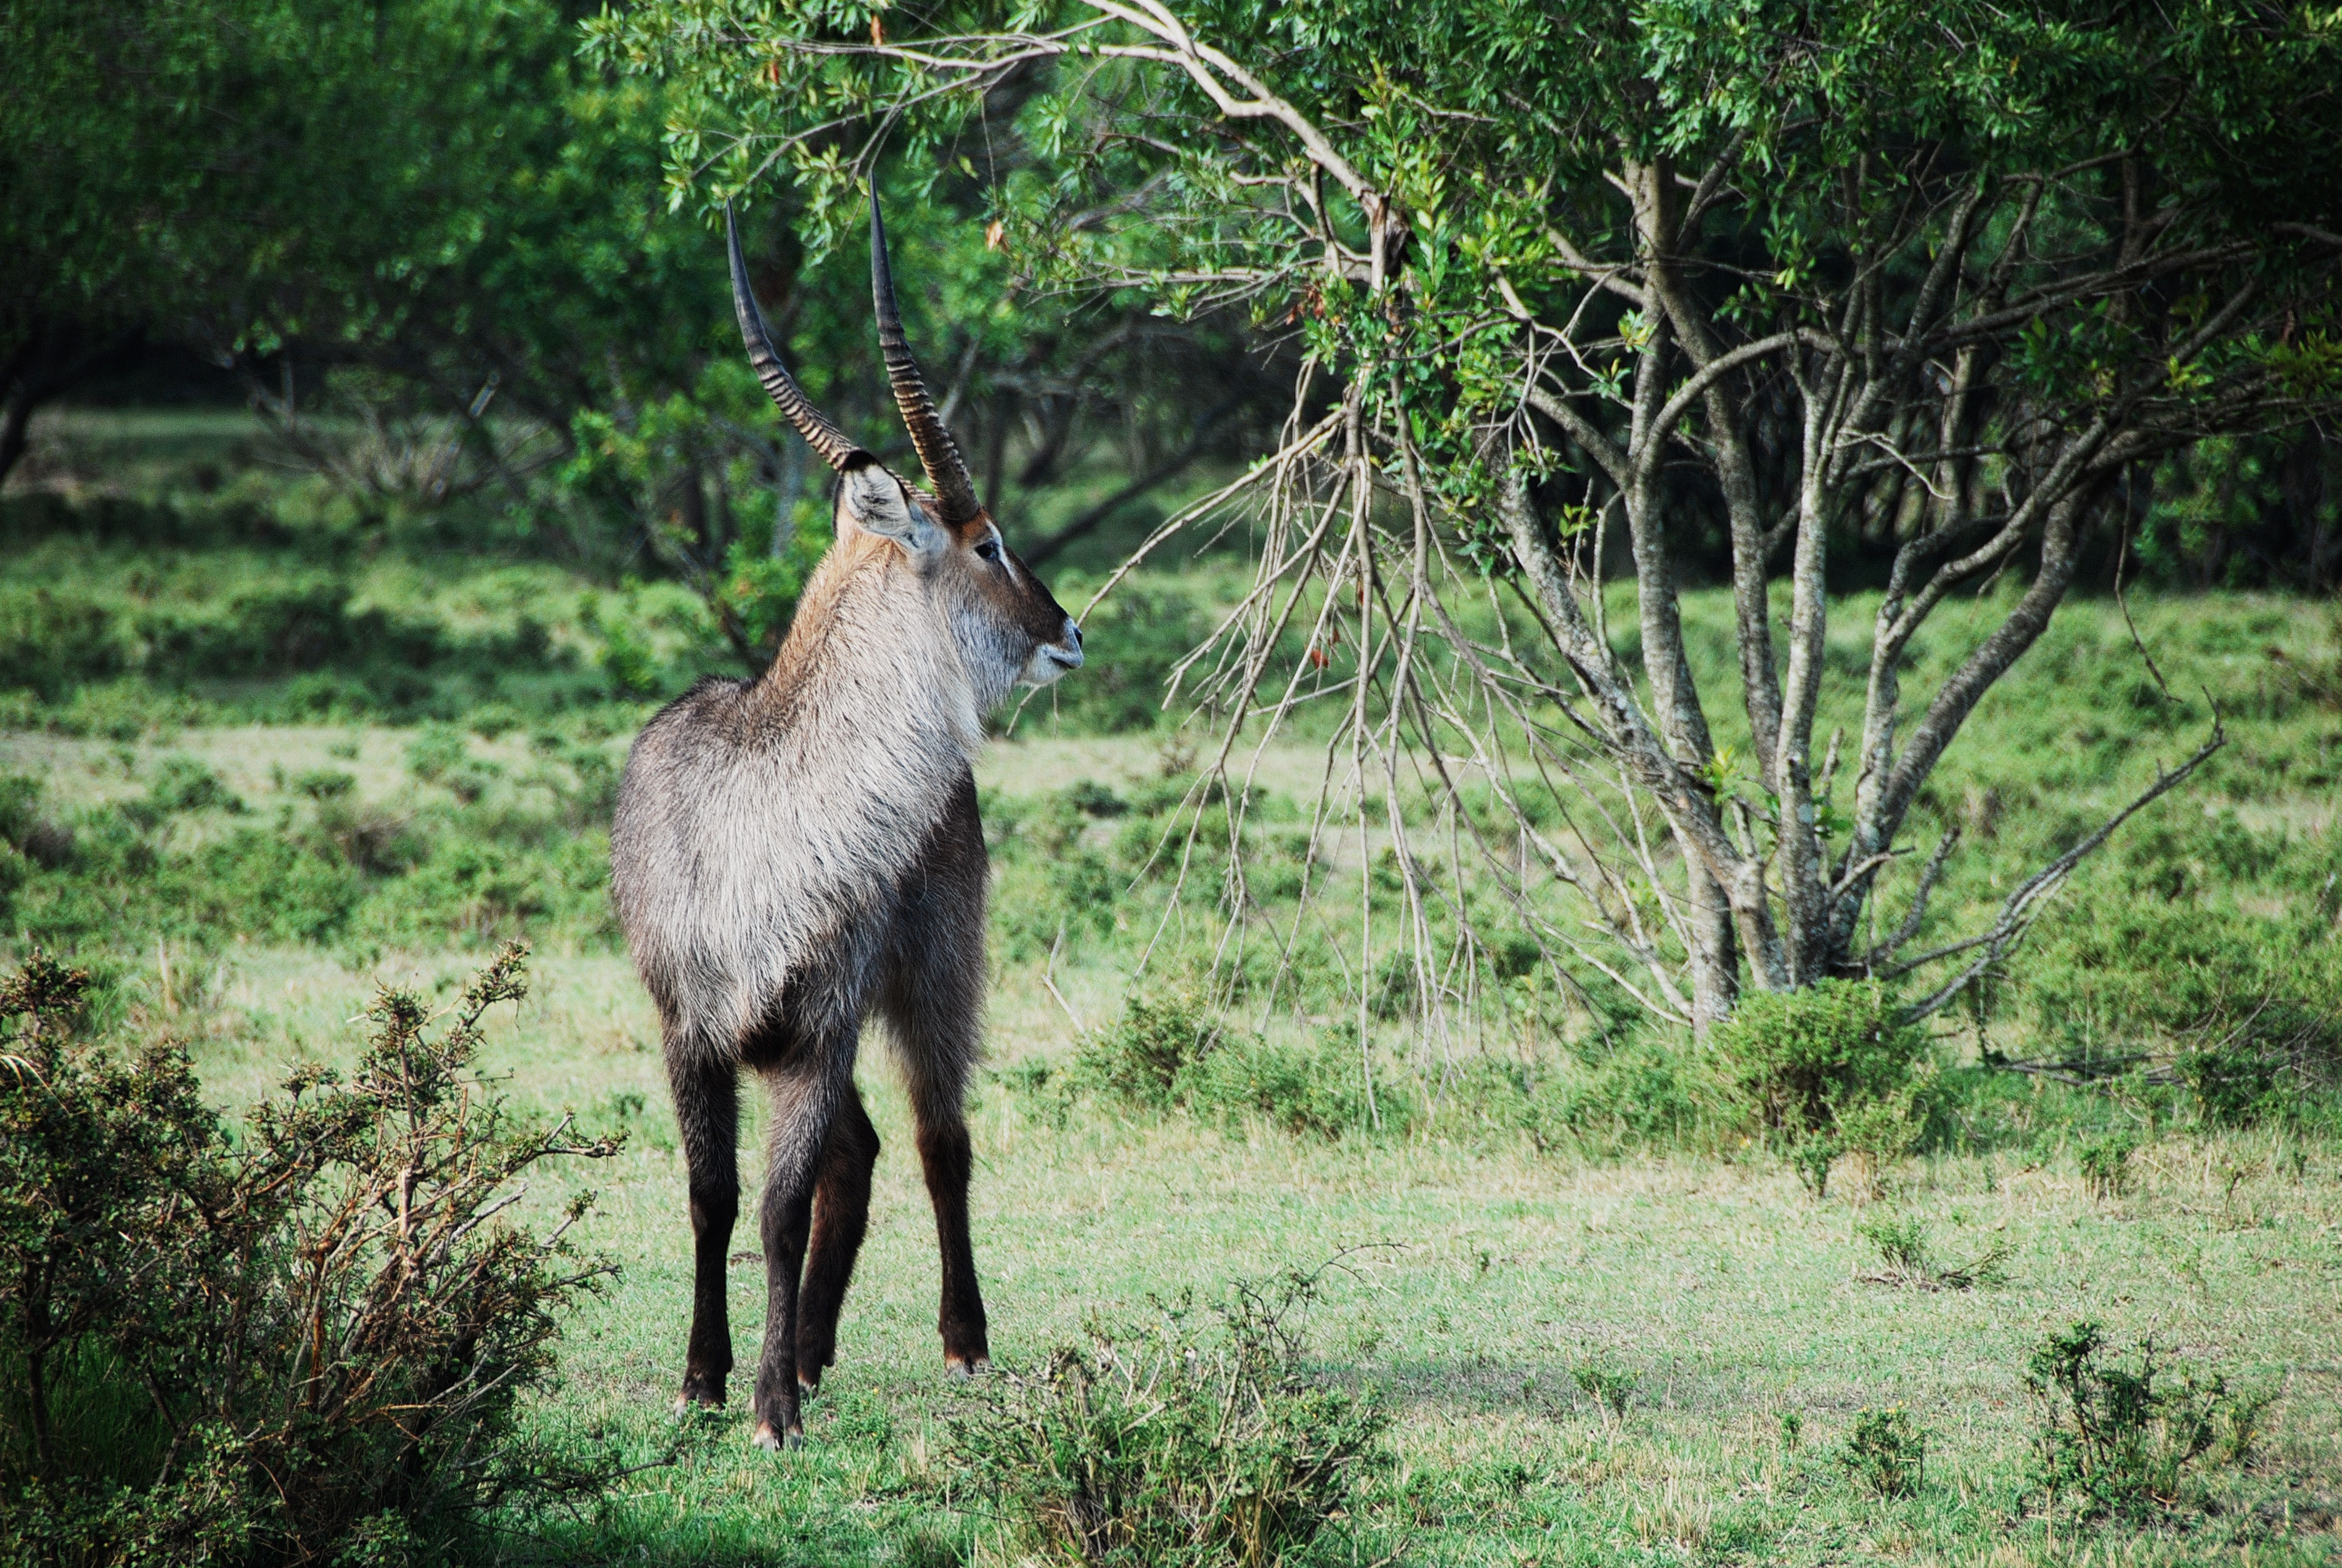 Gray and Black Long Coat Antelope on Green Grass Behind Green Tree, Africa, Nature, Wild life, Wild animal, HQ Photo